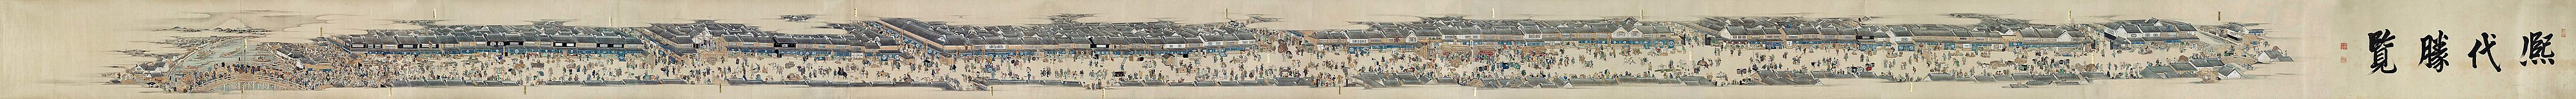 Kidai Shōran (熈代勝覧), 1805. It illustrates scenes from the Edo period taking place along the Nihonbashi main street in Tokyo.